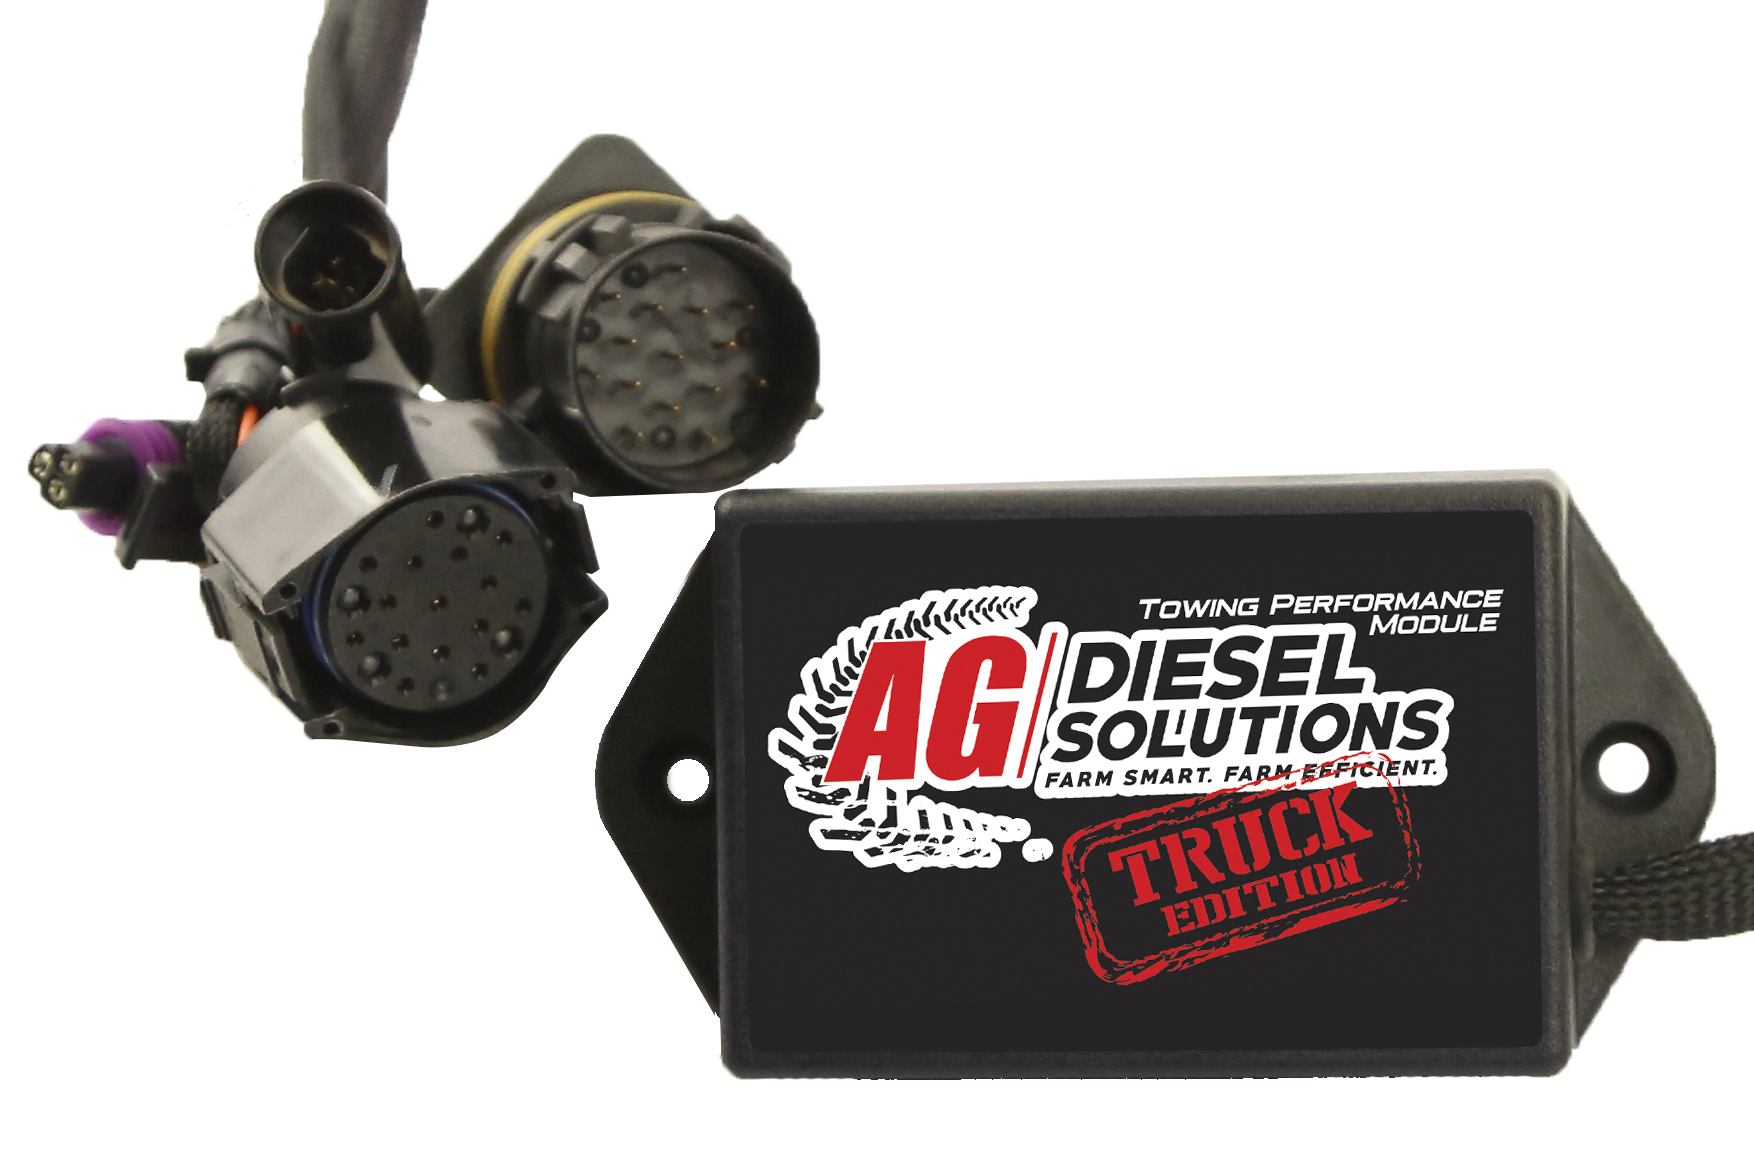 22100_Ag Diesel Solutions Electronic Performance Module for 08 - 10 6.4L Powerstroke Engines